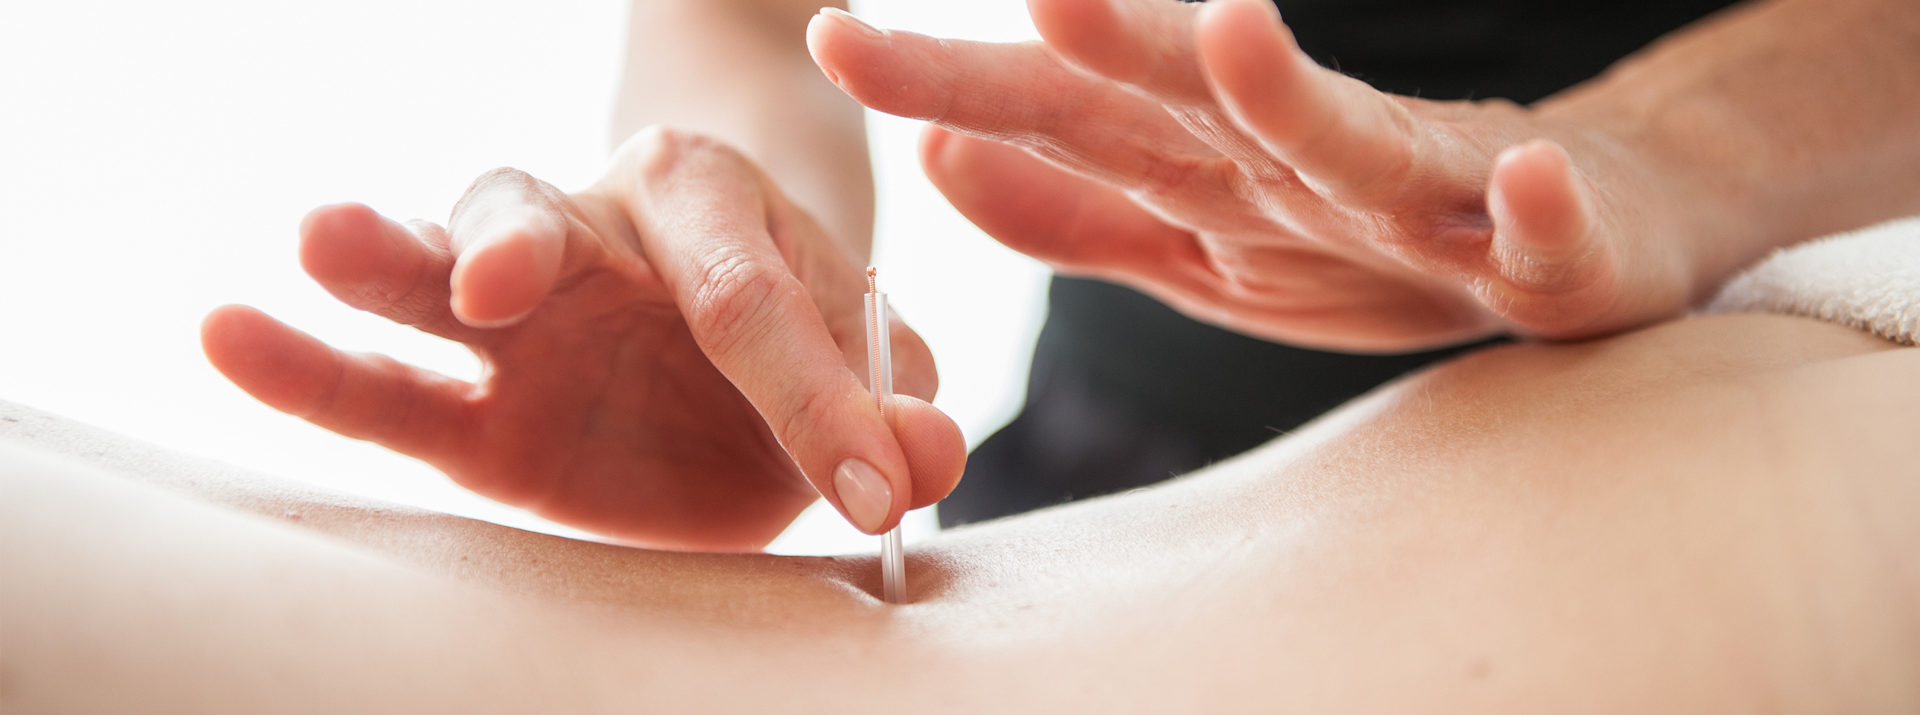 Acupuncture and Dry needling can help chronic pain